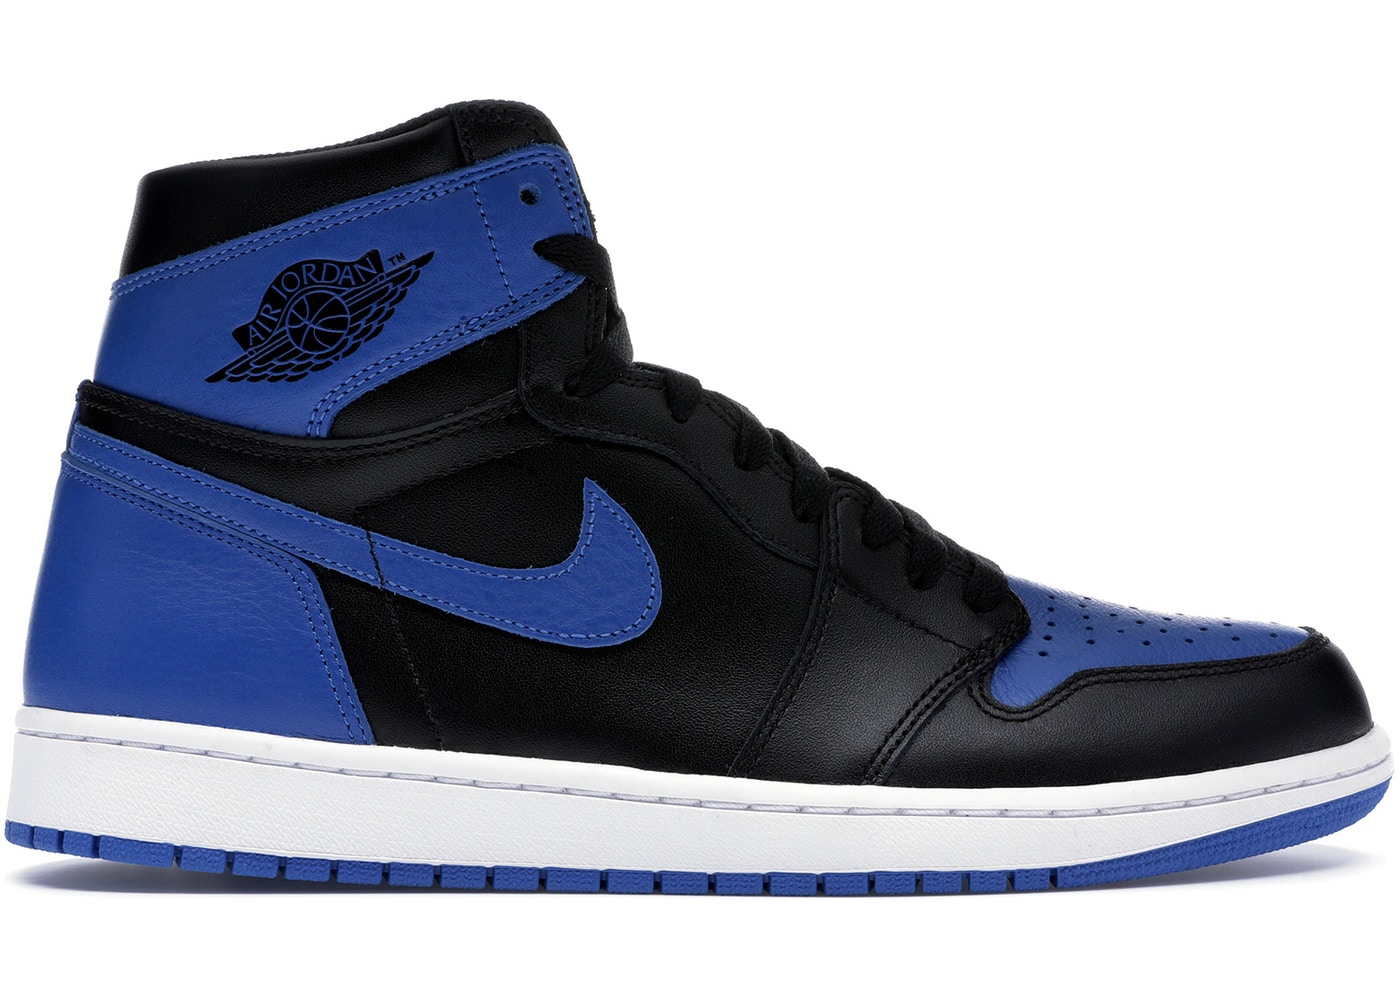 buy online 80ee6 63298 Buy Air Jordan 1 Shoes   Deadstock Sneakers